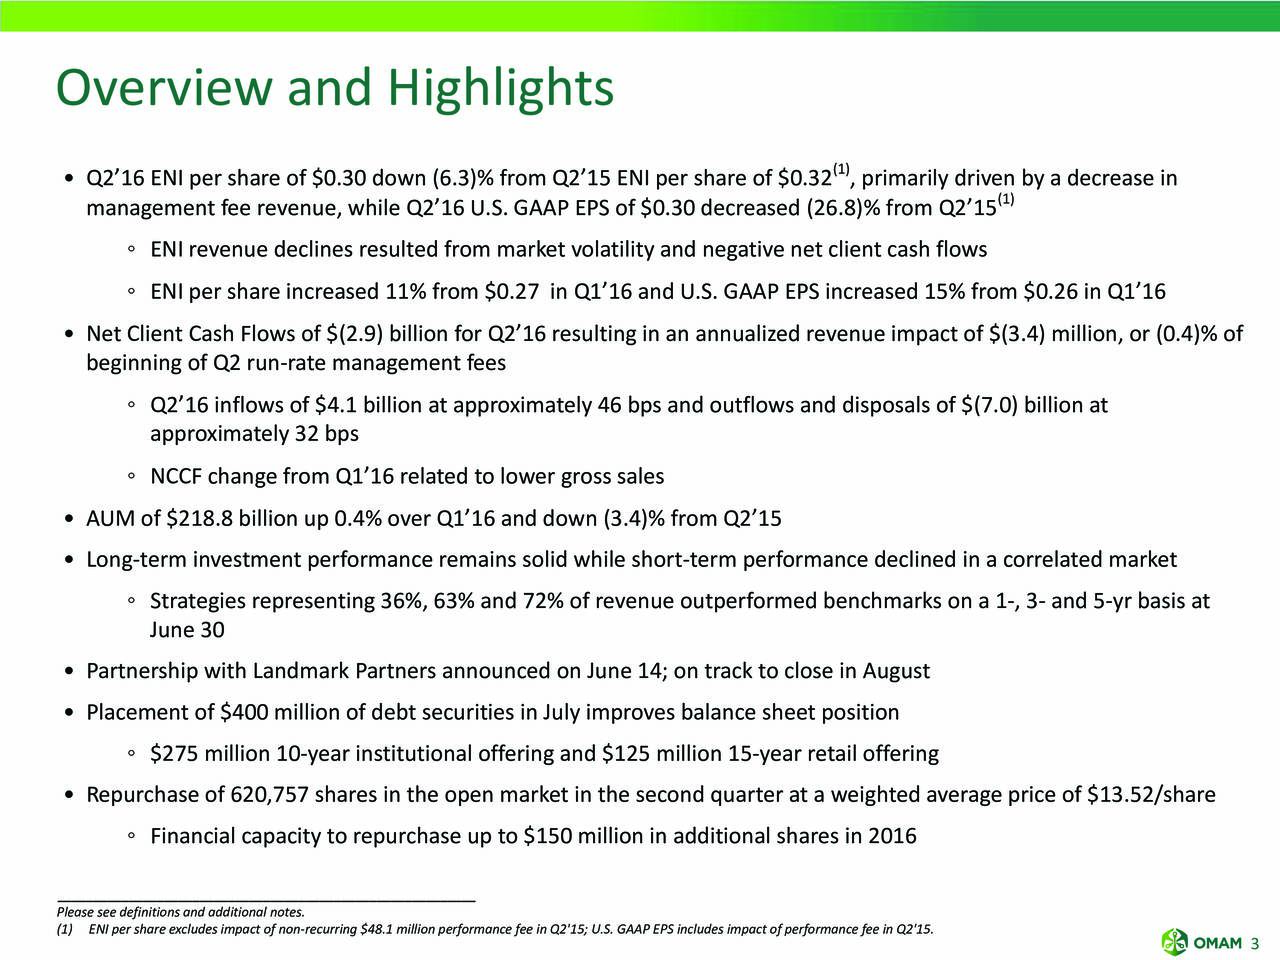 (1) Q2 16 ENI per share of $0.30 down (6.3)% from Q2 15 ENI per share of $0.32 , primarily driven by a decrease in management fee revenue, while Q2 16 U.S. GAAP EPS of $0.30 decreased (26.8)% from Q2 15 (1) ENI revenue declines resulted from market volatility and negative net client cash flows ENI per share increased 11% from $0.27 in Q1 16 and U.S. GAAP EPS increased 15% from $0.26 in Q1 16 Net Client Cash Flows of $(2.9) billion for Q2 16 resulting in an annualized revenue impact of $(3.4) million, or (0.4)% of beginning of Q2 run-rate management fees Q2 16 inflows of $4.1 billion at approximately 46 bps and outflows and disposals of $(7.0) billion at approximately 32 bps NCCF change from Q1 16 related to lower gross sales AUM of $218.8 billion up 0.4% over Q1 16 and down (3.4)% from Q2 15 Long-term investment performance remains solid while short-term performance declined in a correlated market Strategies representing 36%, 63% and 72% of revenue outperformed benchmarks on a 1-, 3- and 5-yr basis at June 30 Partnership with Landmark Partners announced on June 14; on track to close in August Placement of $400 million of debt securities in July improves balance sheet position $275 million 10-year institutional offering and $125 million 15-year retail offering Repurchase of 620,757 shares in the open market in the second quarter at a weighted average price of $13.52/share Financial capacity to repurchase up to $150 million in additional shares in 2016 ___________________________________________________________ Please see definitions and additional notes. (1) ENI per share excludes impact of non-recurring $48.1 million performance fee in Q2'15; U.S. GAAP EPS includes impact of performance fee in Q2'15.